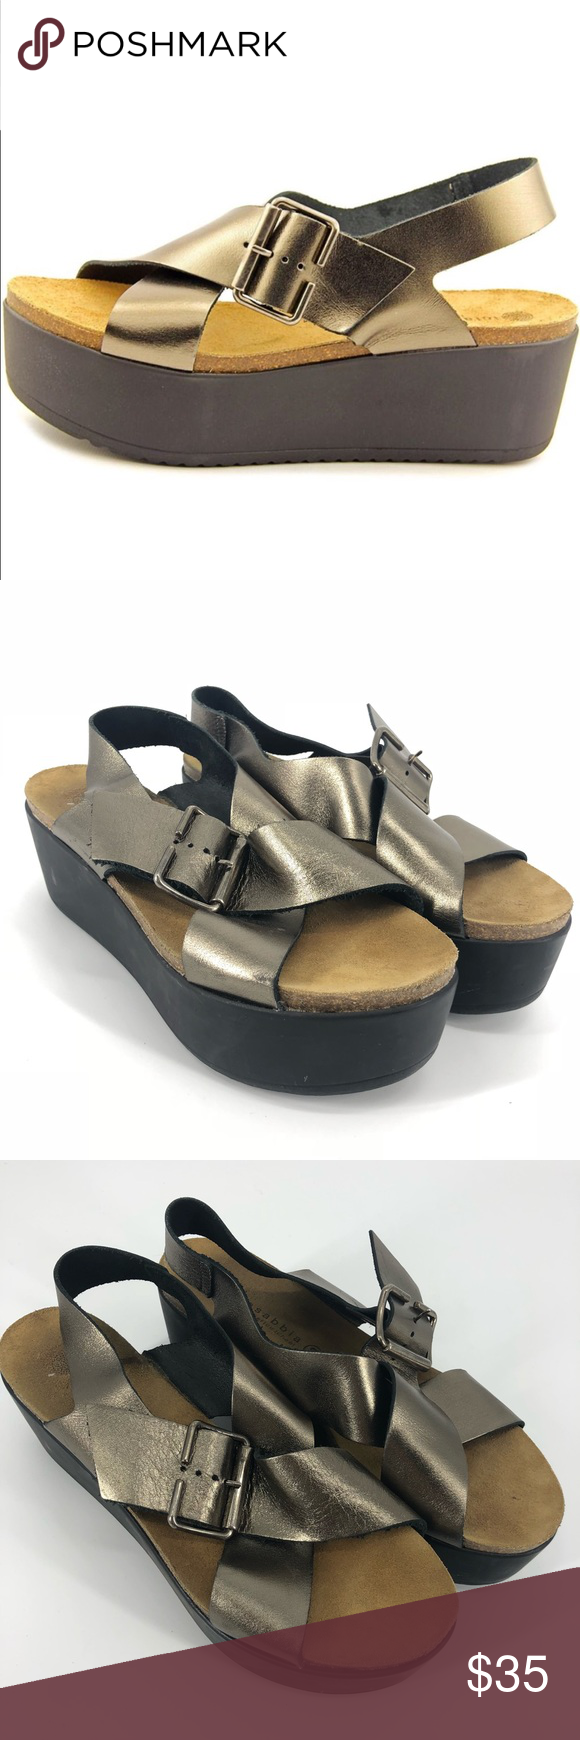 1653fe3b9ca2 Lola Sabbia Metallic Ramona Leather Sandal Lola Sabbia Women s Metallic  Ramona Open Toe Patent Leather Platform